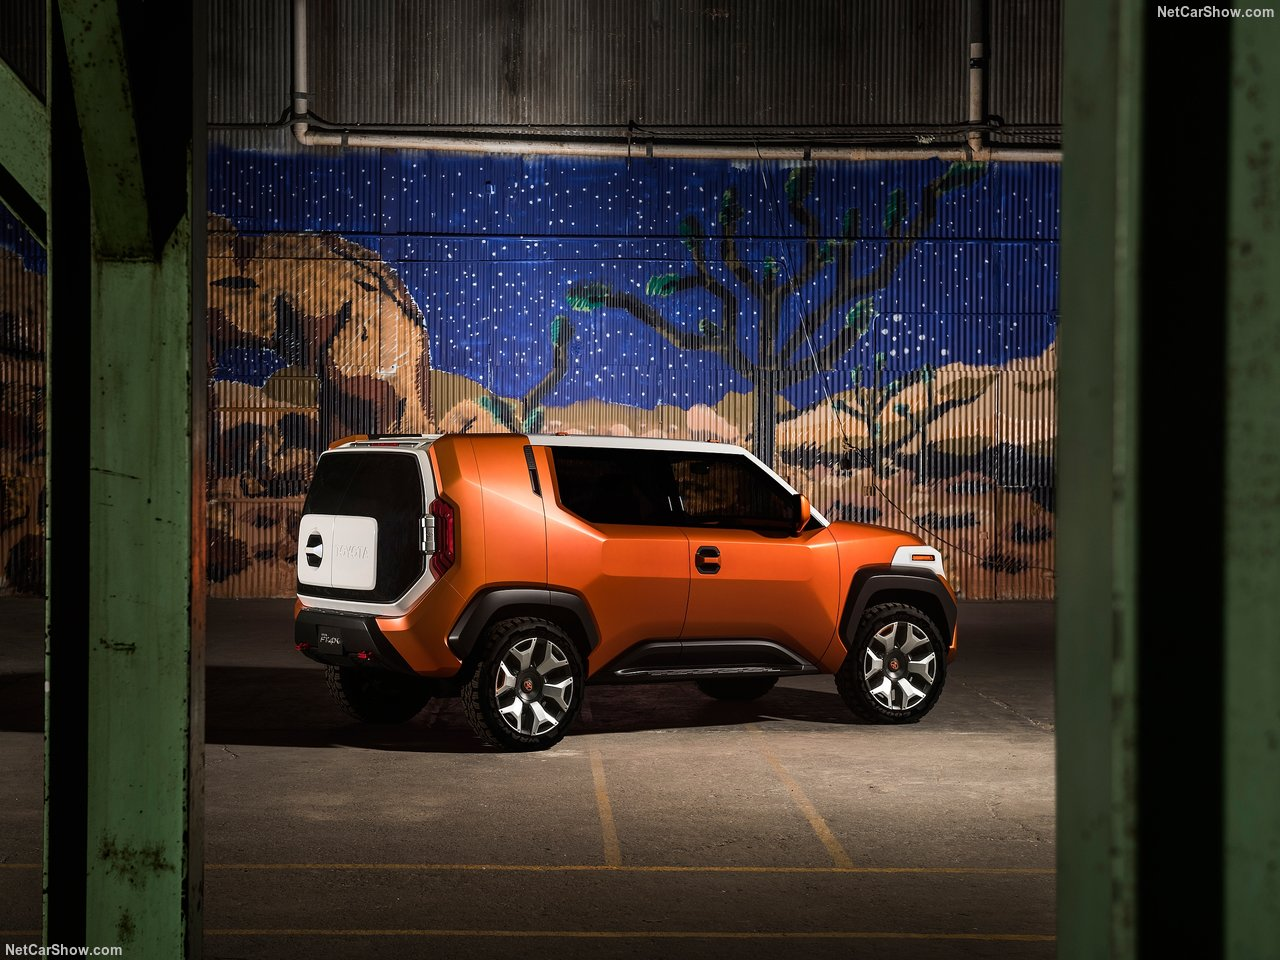 am i the only one who likes the idea of a jeep renegade like toyota rh mindovermotor com